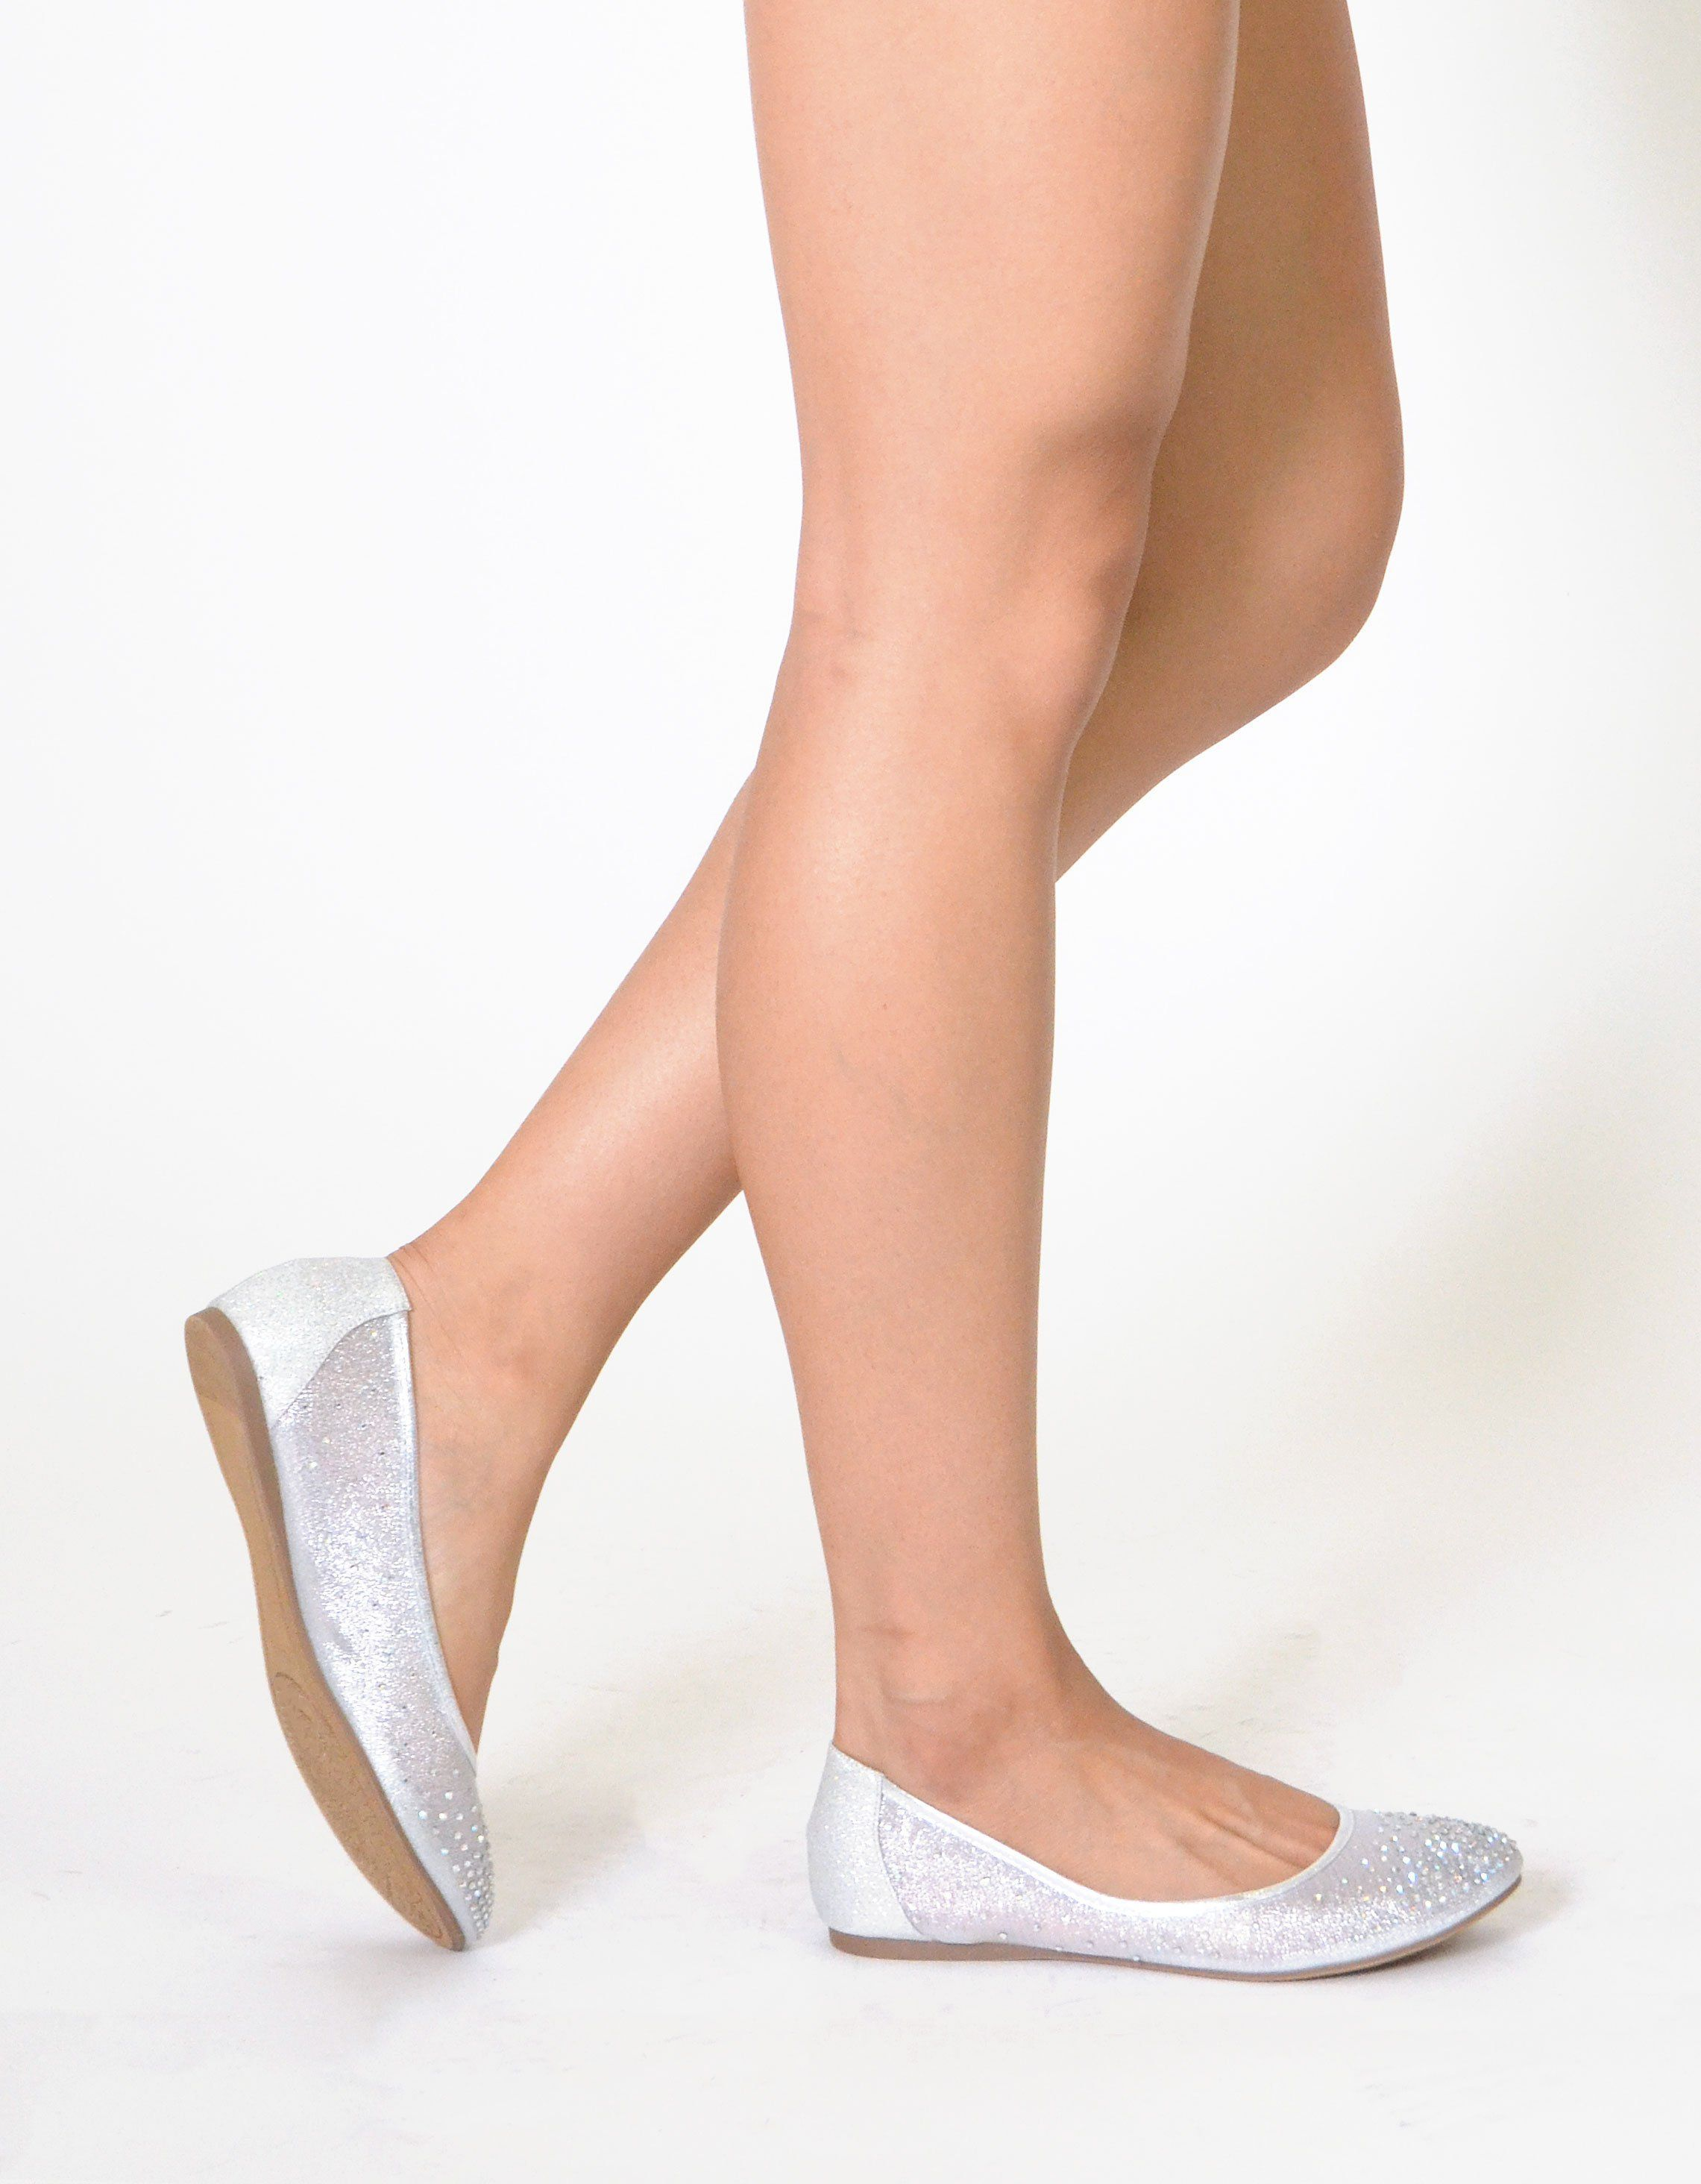 c94566ca32555 Dress up your casual wardrobe with this sophisticated ballet flat. The  rhinestone accent adds a